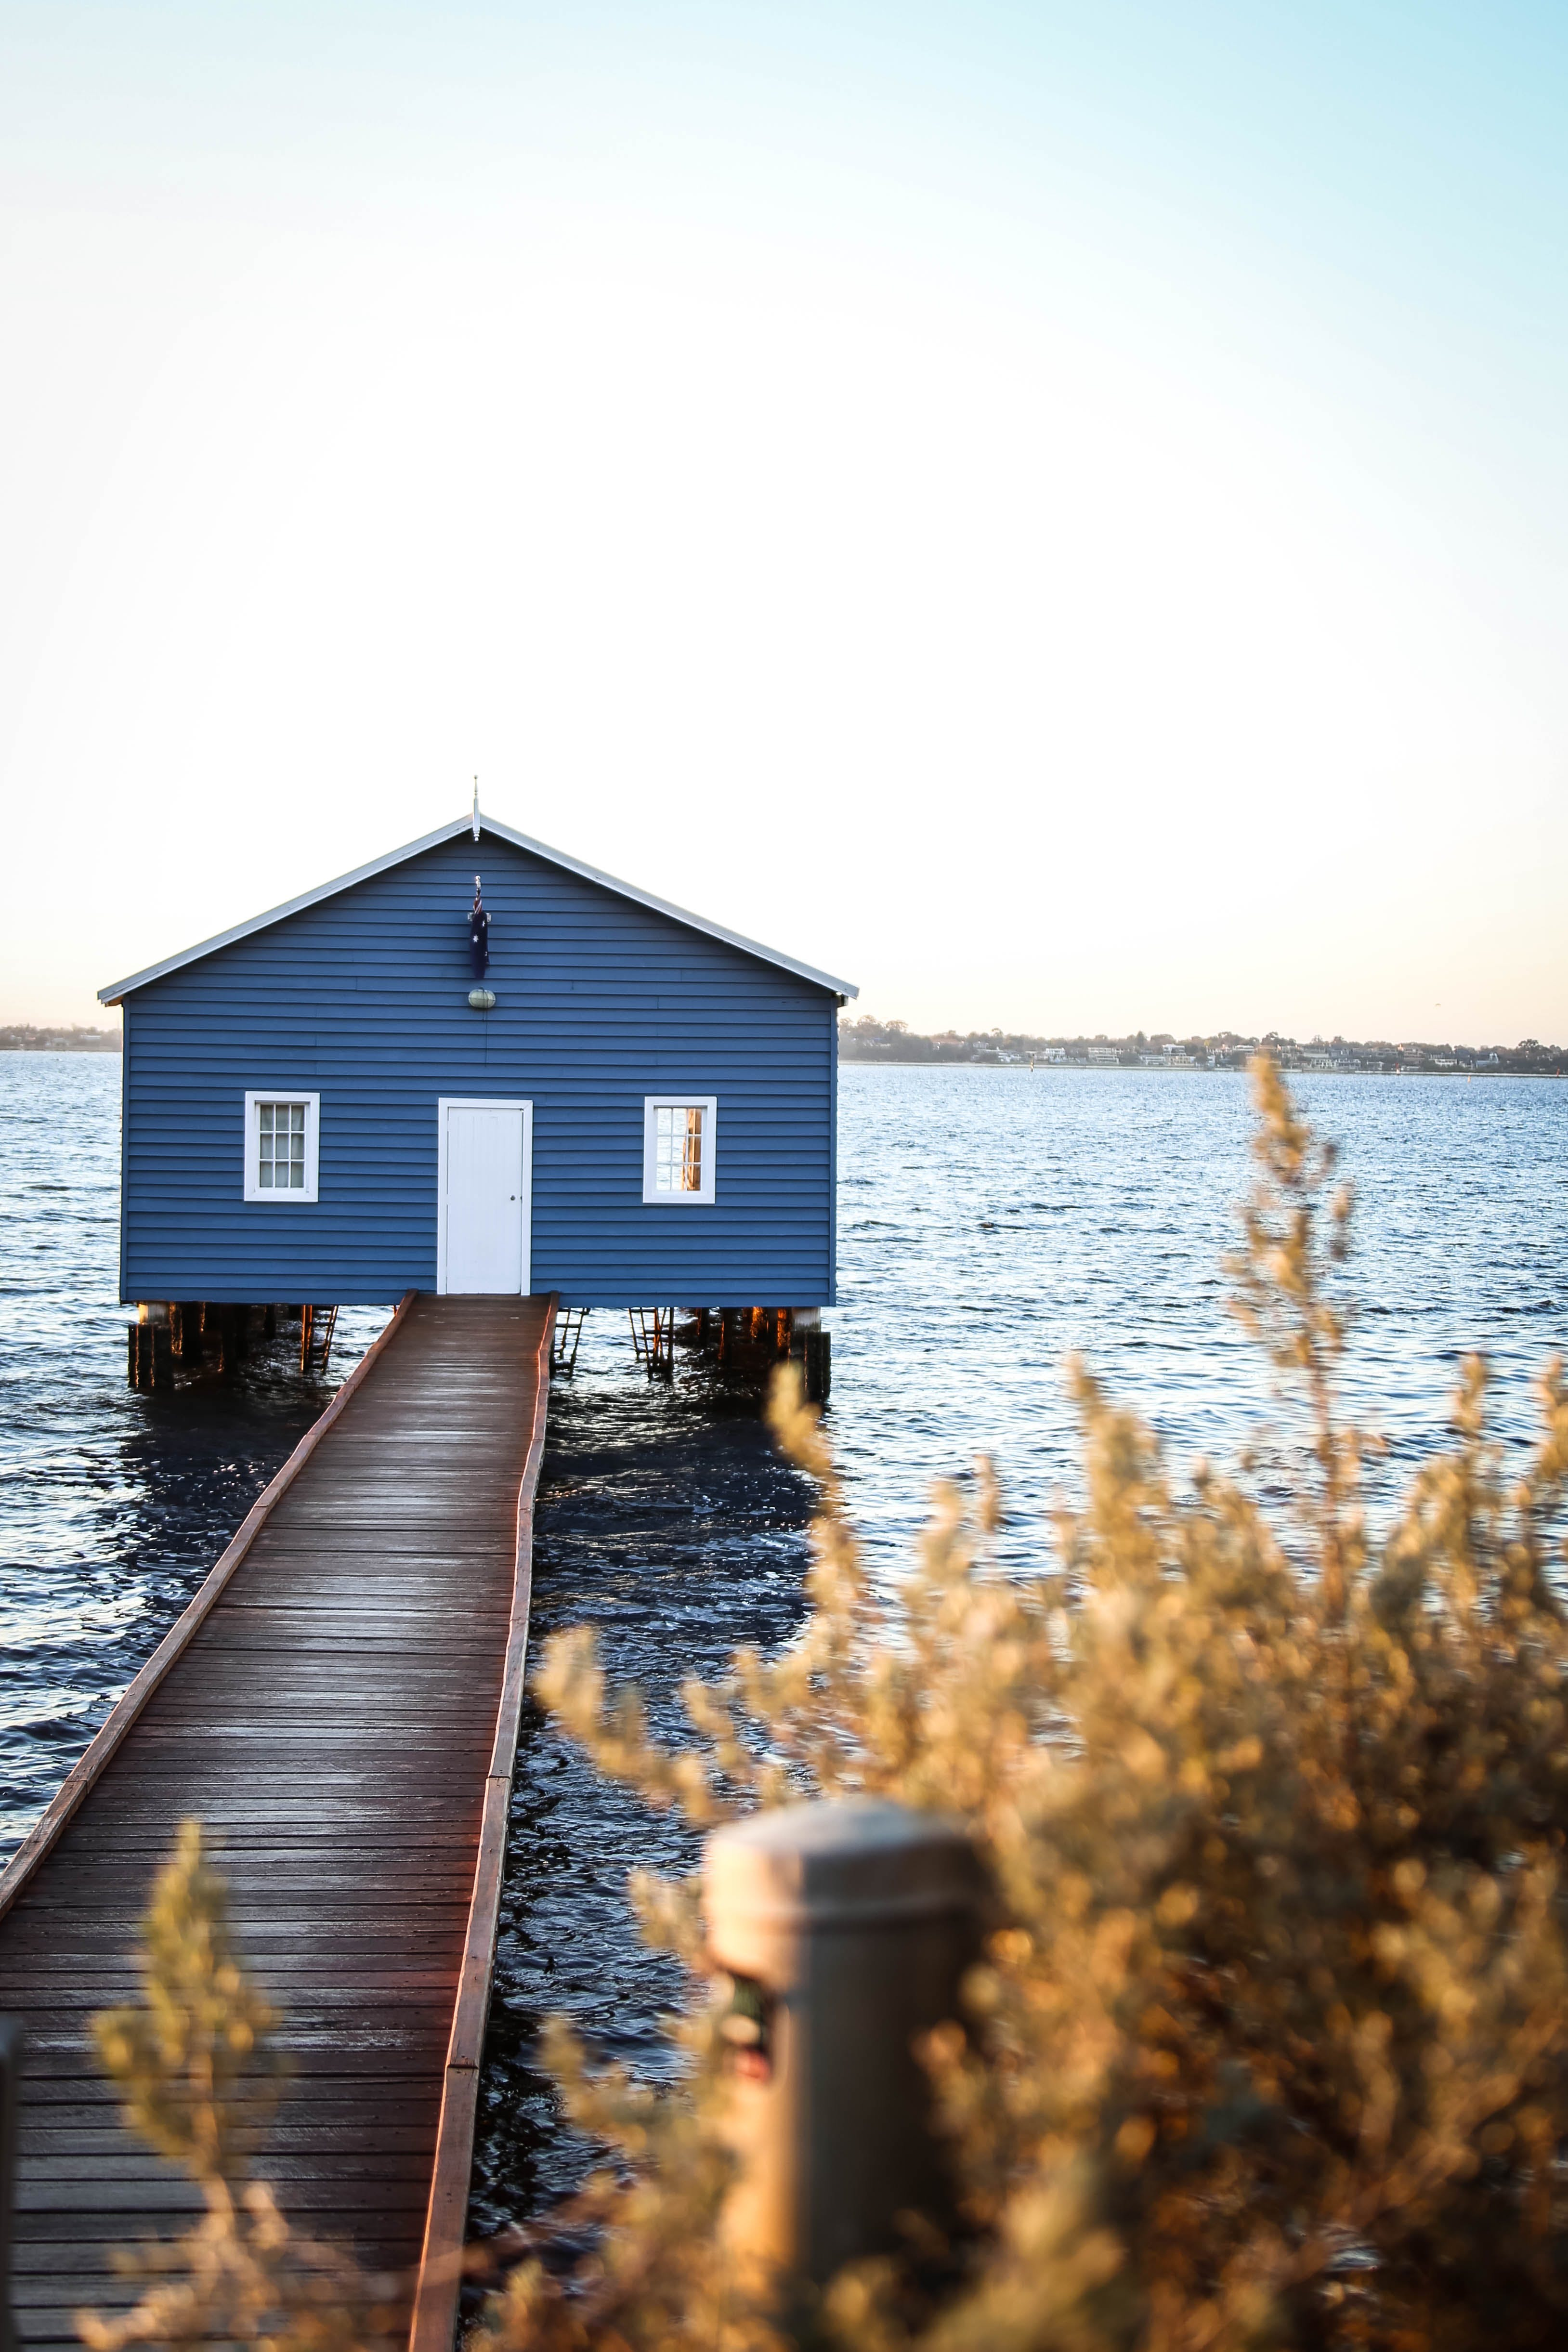 House With Dock on Body of Water Under Blue and White Sky